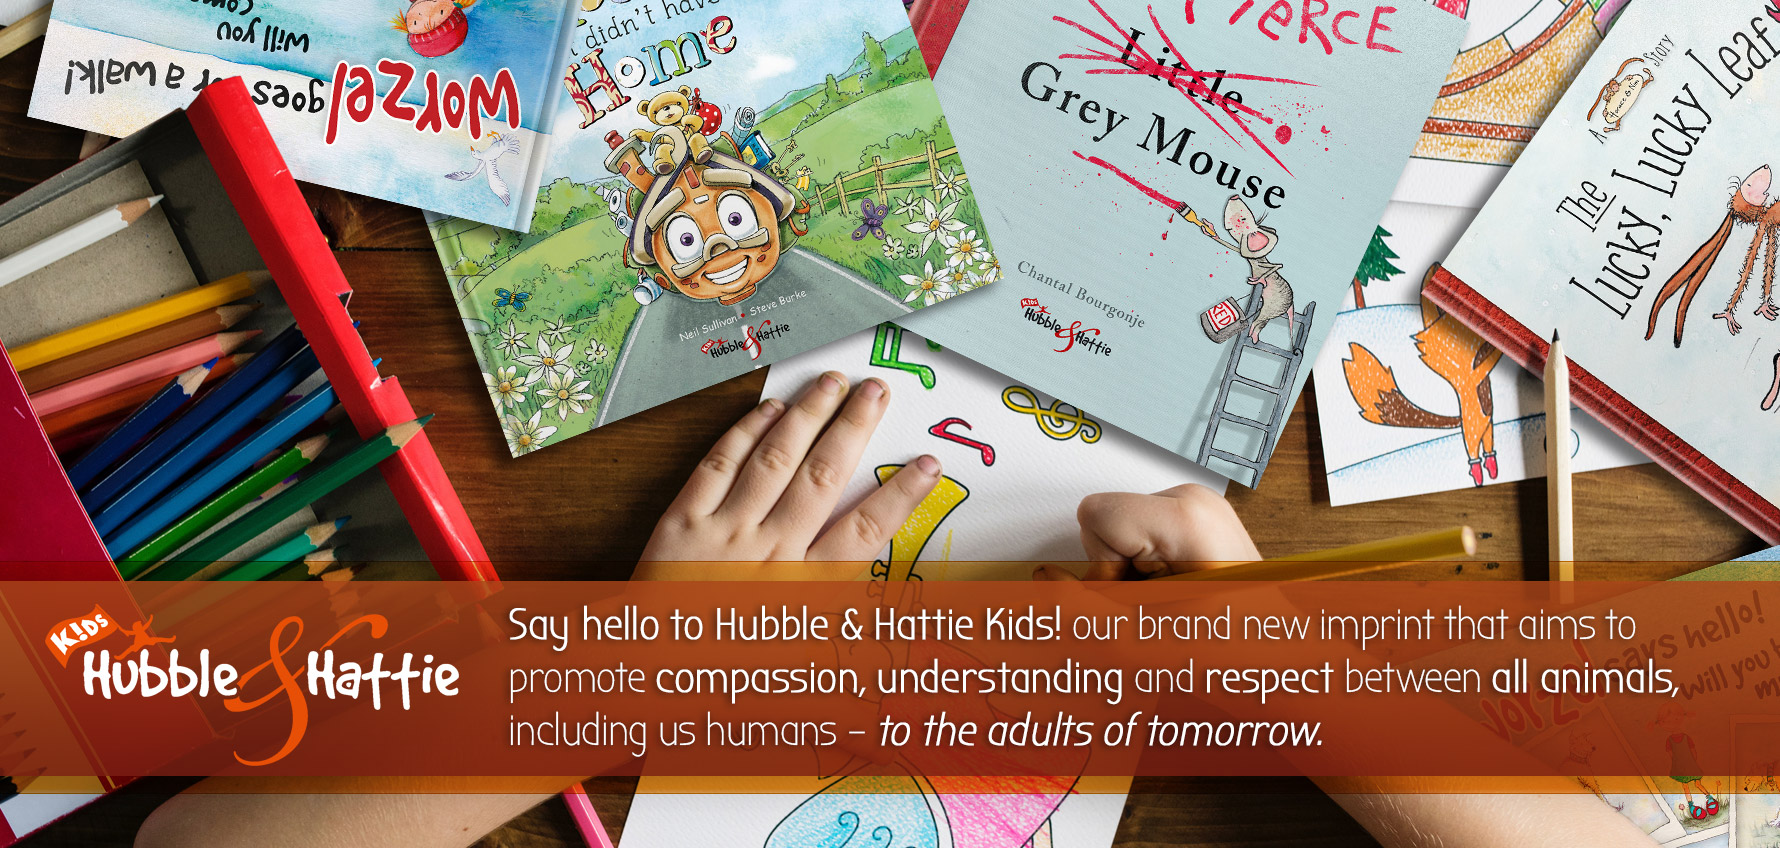 Welcome to Hubble & Hattie Kids!, our new imprint that aims to promote our values of compassion, kindness and understanding between all animals (even us humans), to the adults of the future.